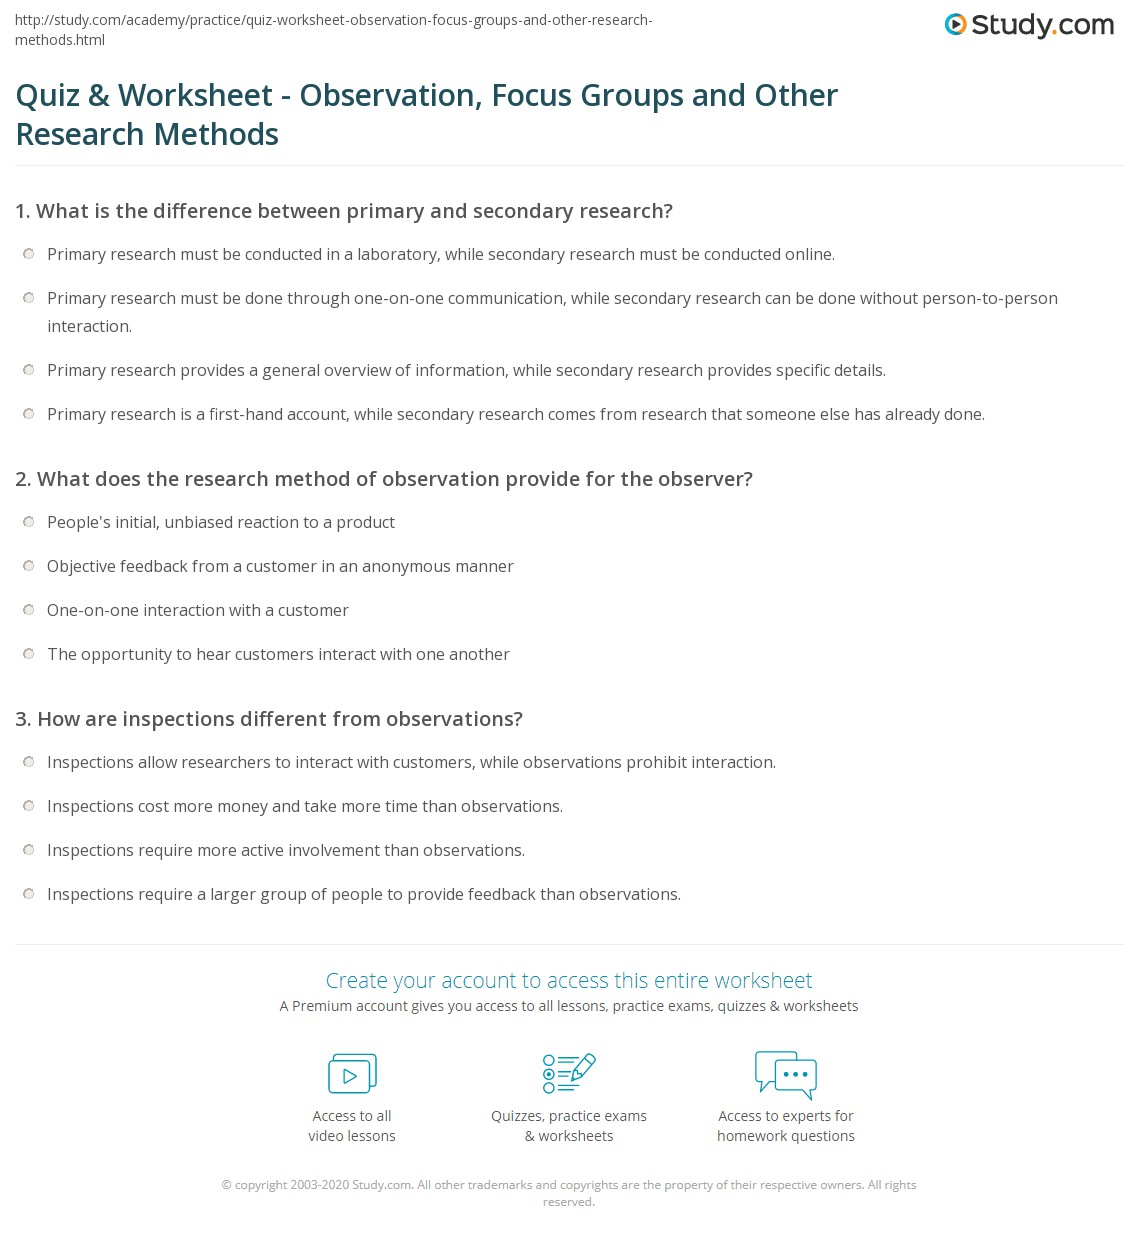 quiz worksheet observation focus groups and other research print research methods observation focus groups more worksheet